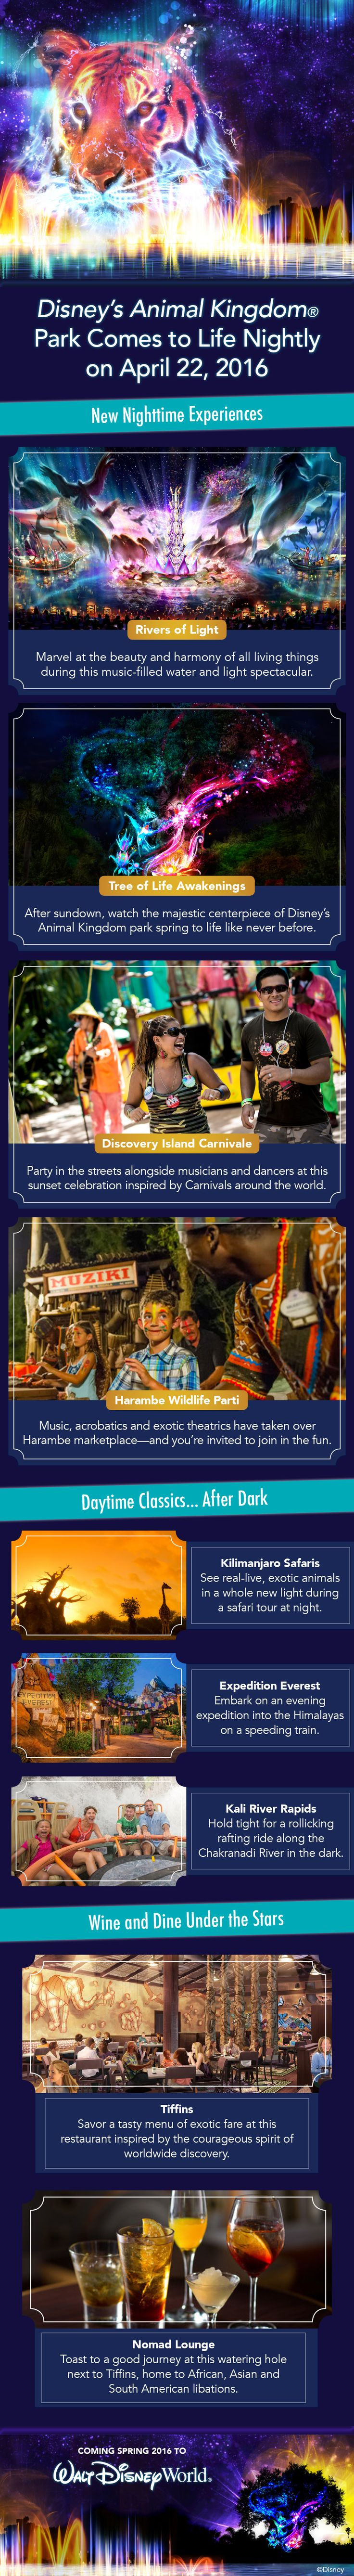 Disney's Animal Kingdom Park will come to life nightly beginning April 22, 2016! From new nighttime experiences like Rivers of Light and Tree of Life Awakenings to experiencing daytime classics after dark, here's a look at the exciting new offerings you'll be able to enjoy!